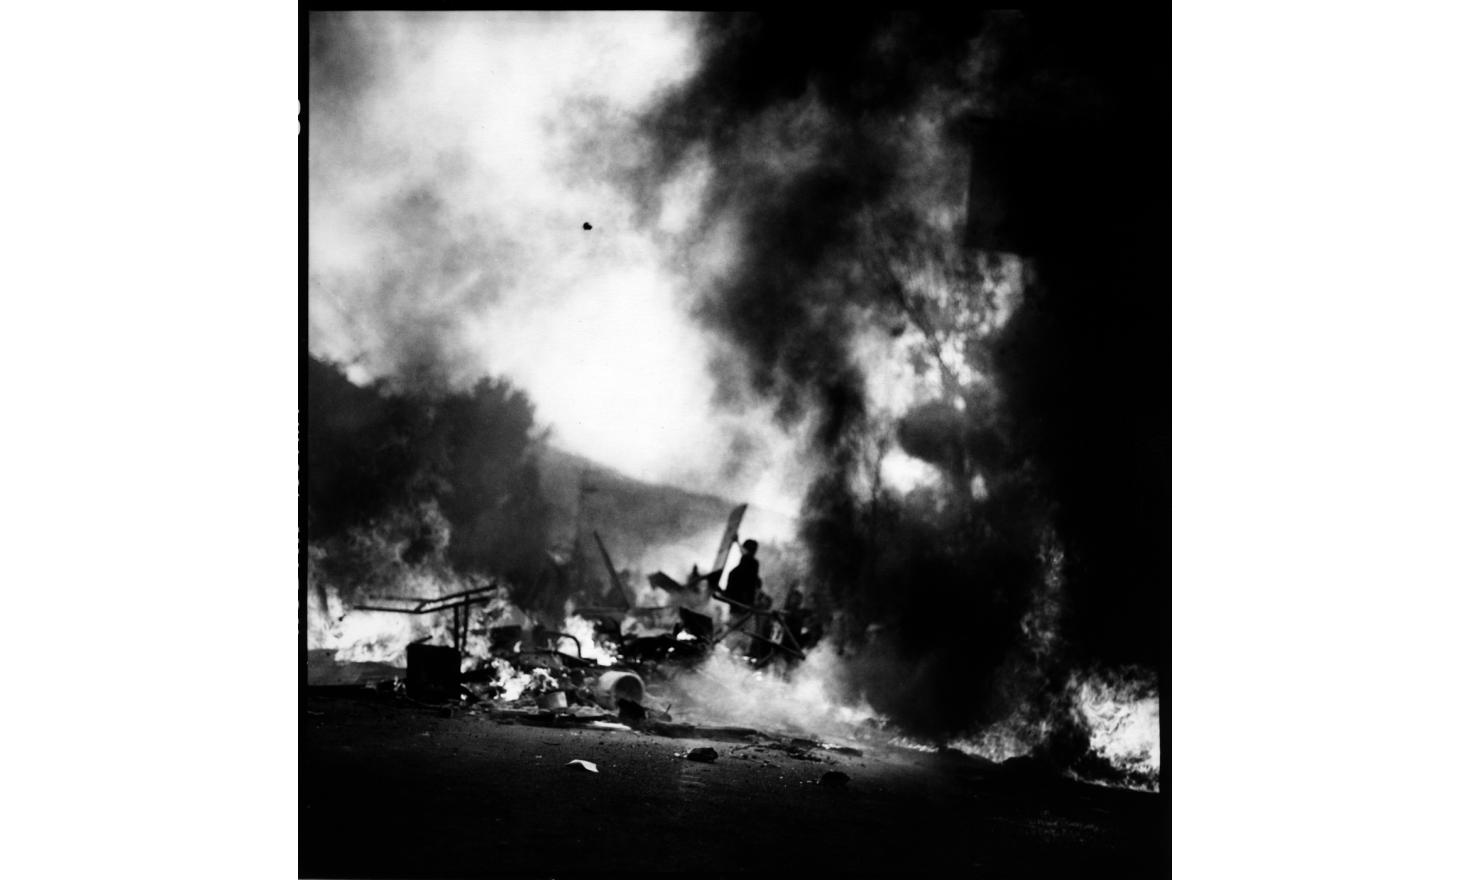 Burning tires during protests against the absolute monarchy of King Gyanendra, Kalanki outskirt of Kathmandu 21st of April 2006